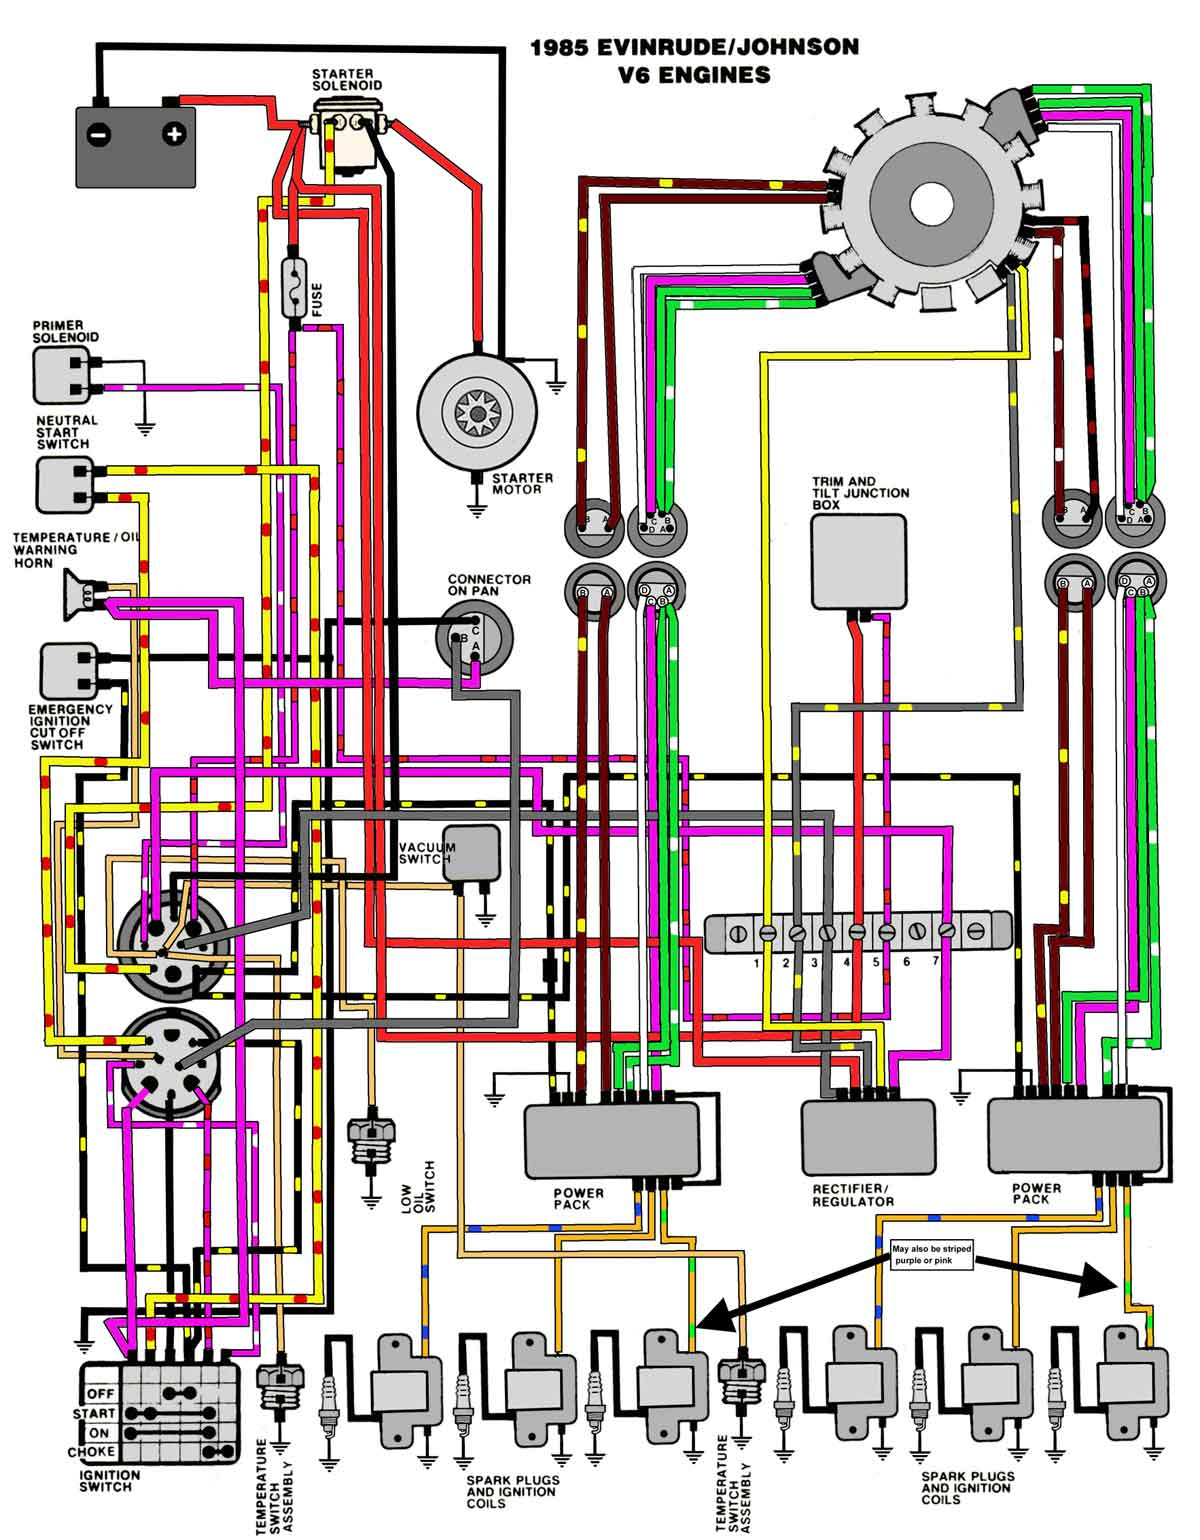 85_V6 mastertech marine evinrude johnson outboard wiring diagrams 70 HP Evinrude Schematic at gsmx.co